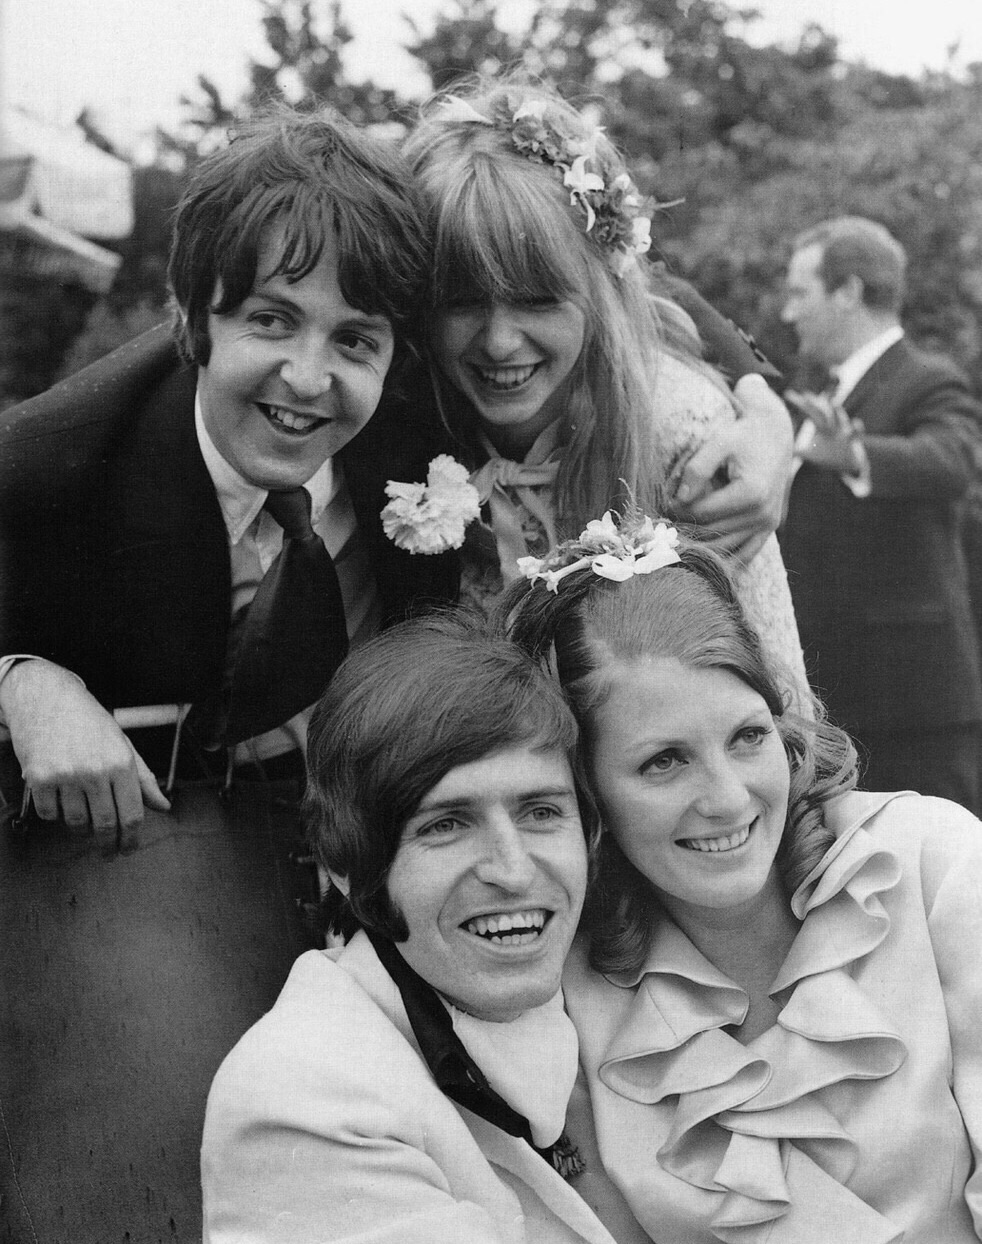 Paul and Mike McCartney with Jane Asher and Angela Fishwick, June 8th 1968